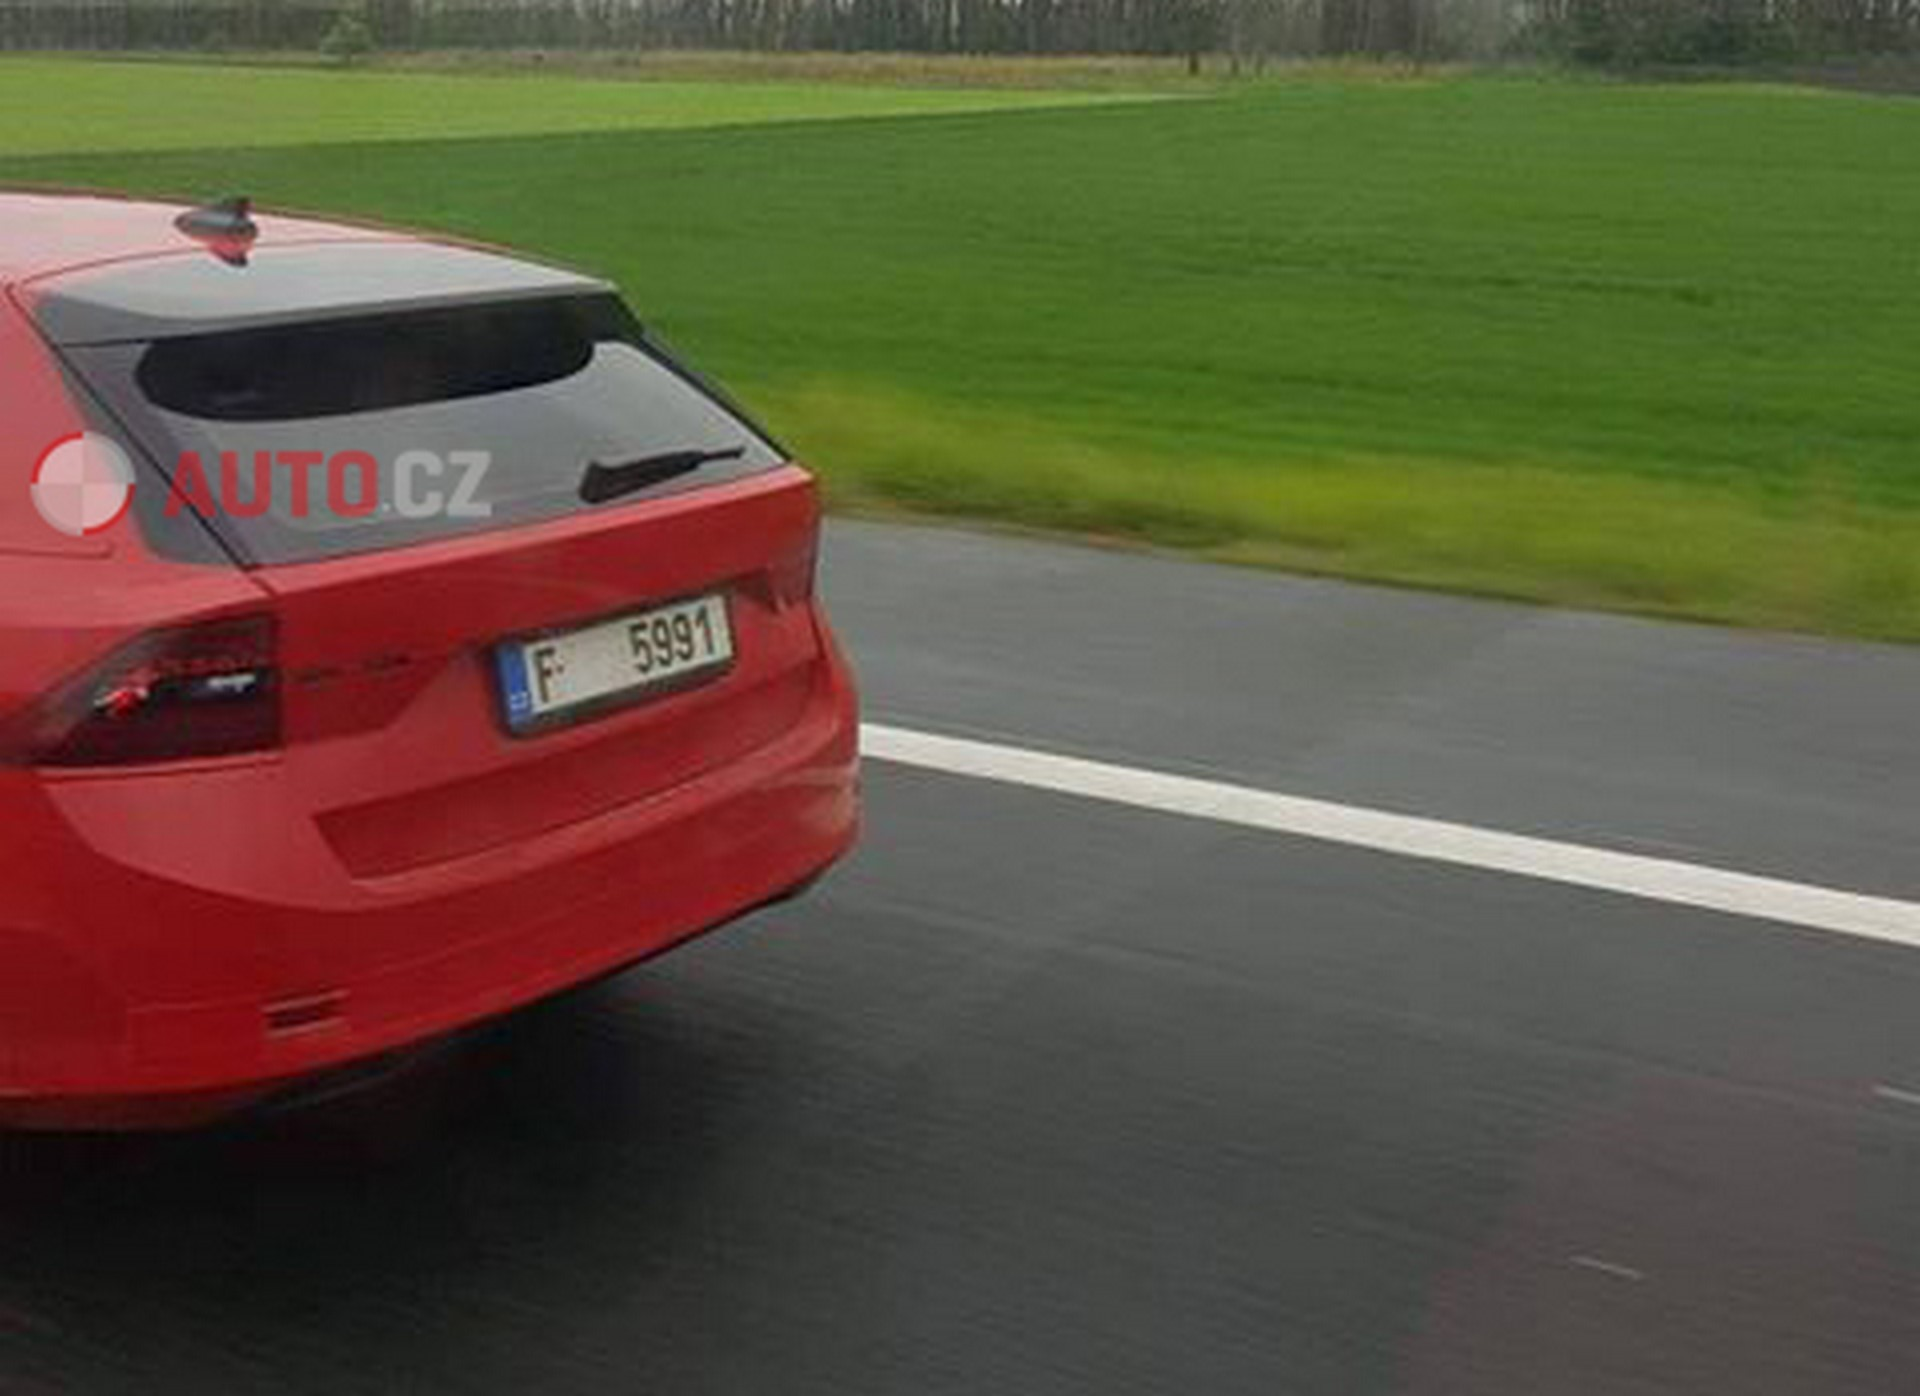 Skoda-Octavia-spy-photos-3